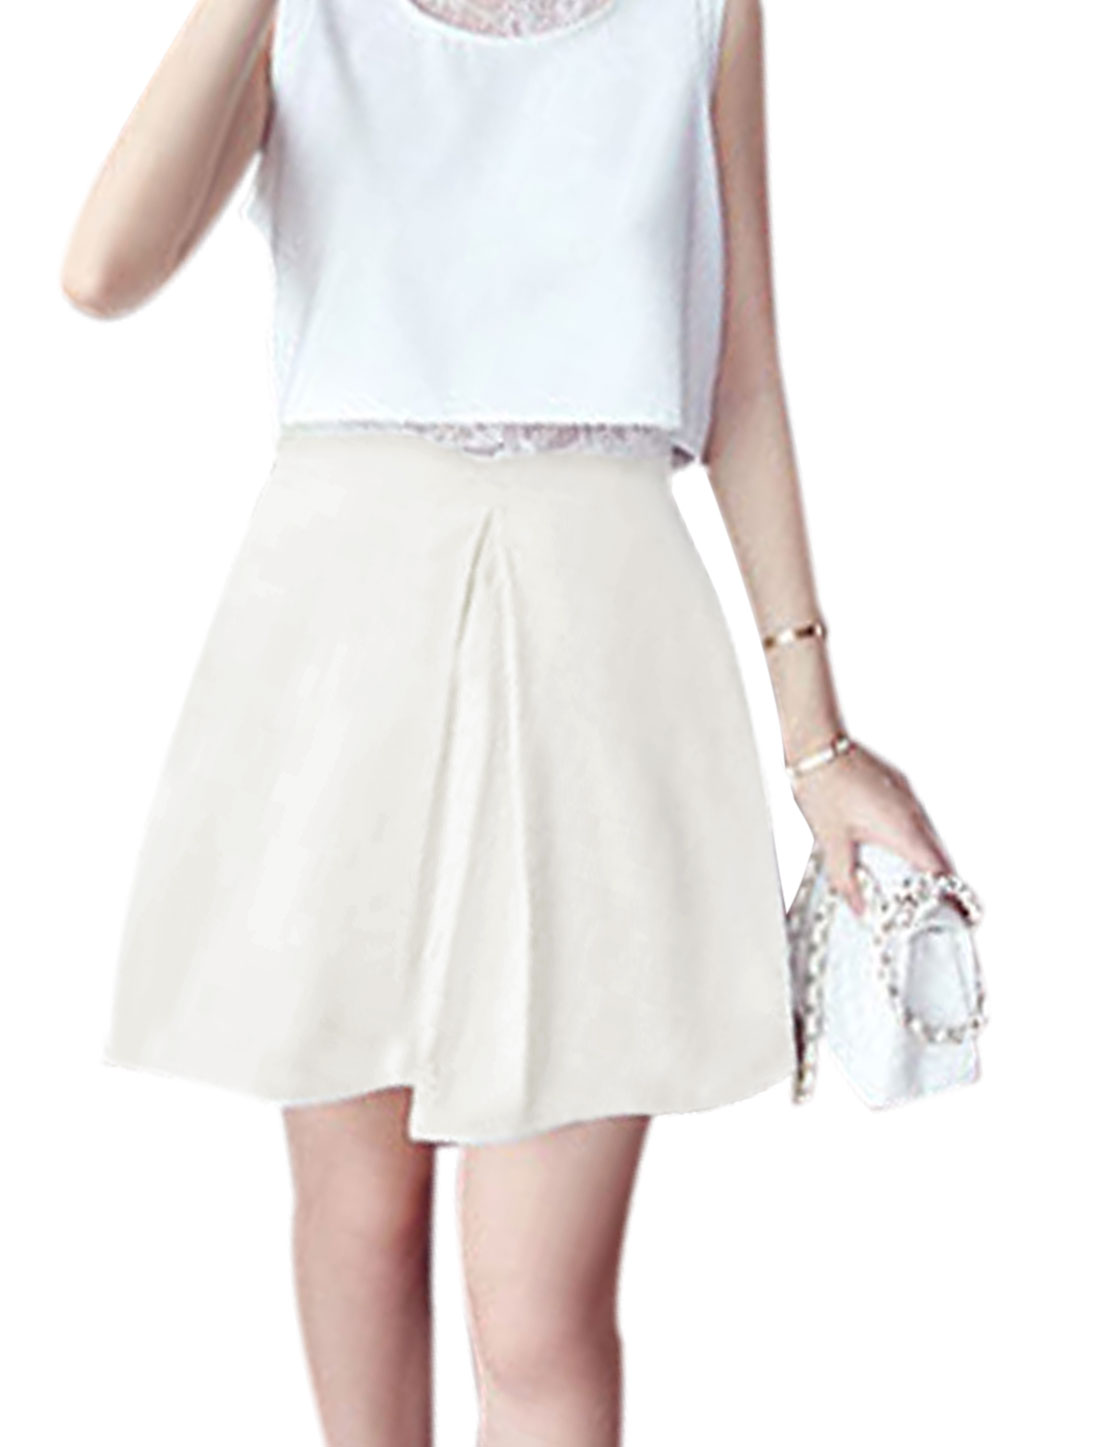 Lady Ruched Detail Zipper Closure Chic A-Line Skirt White M